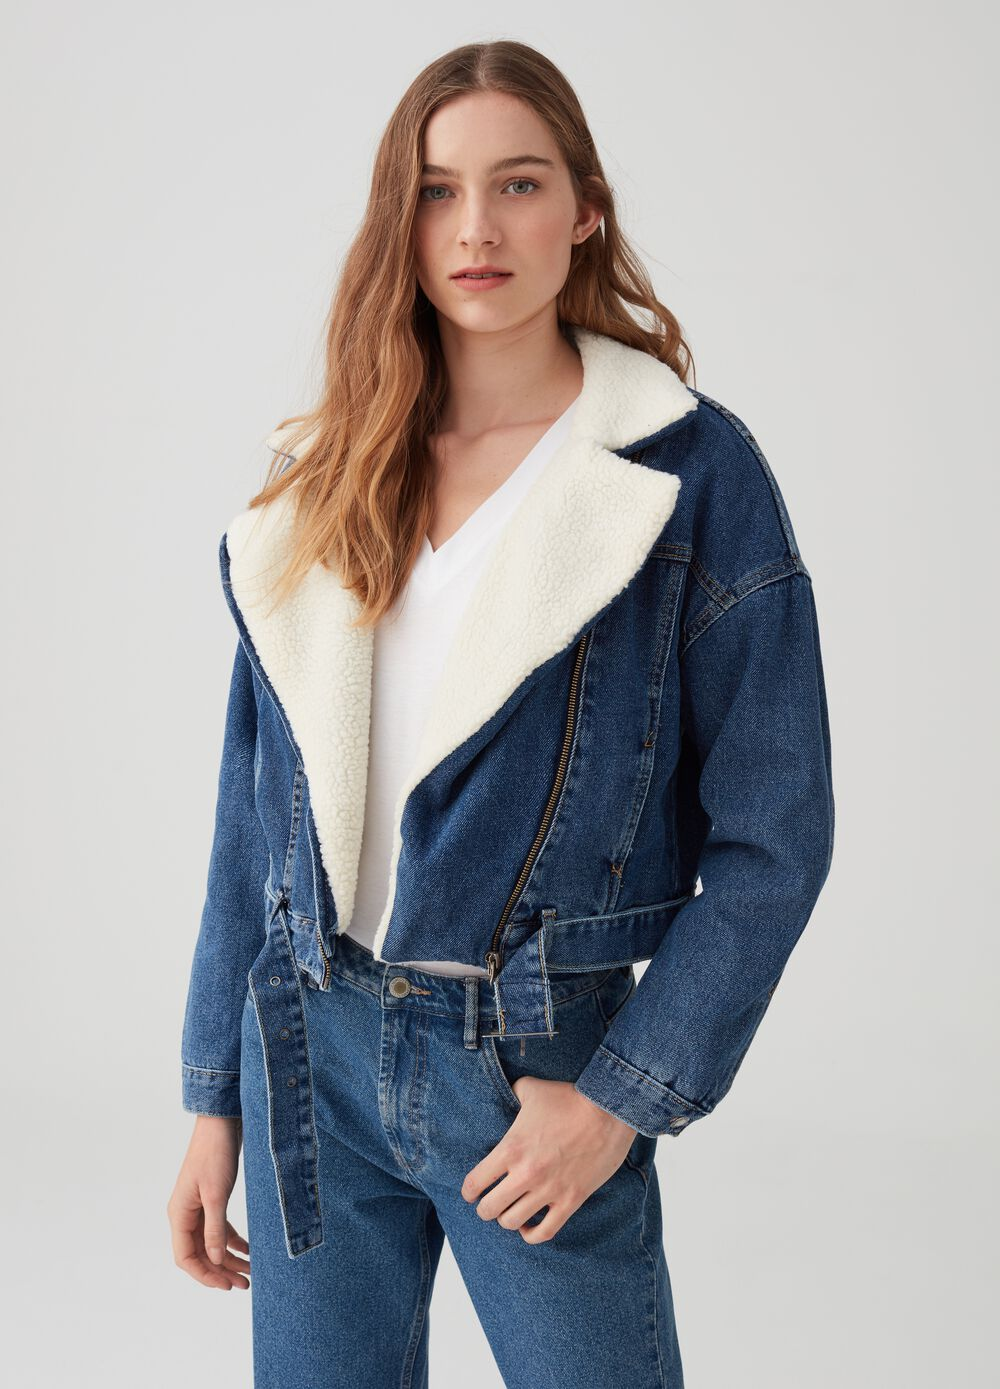 Crop jacket with sherpa-effect padding